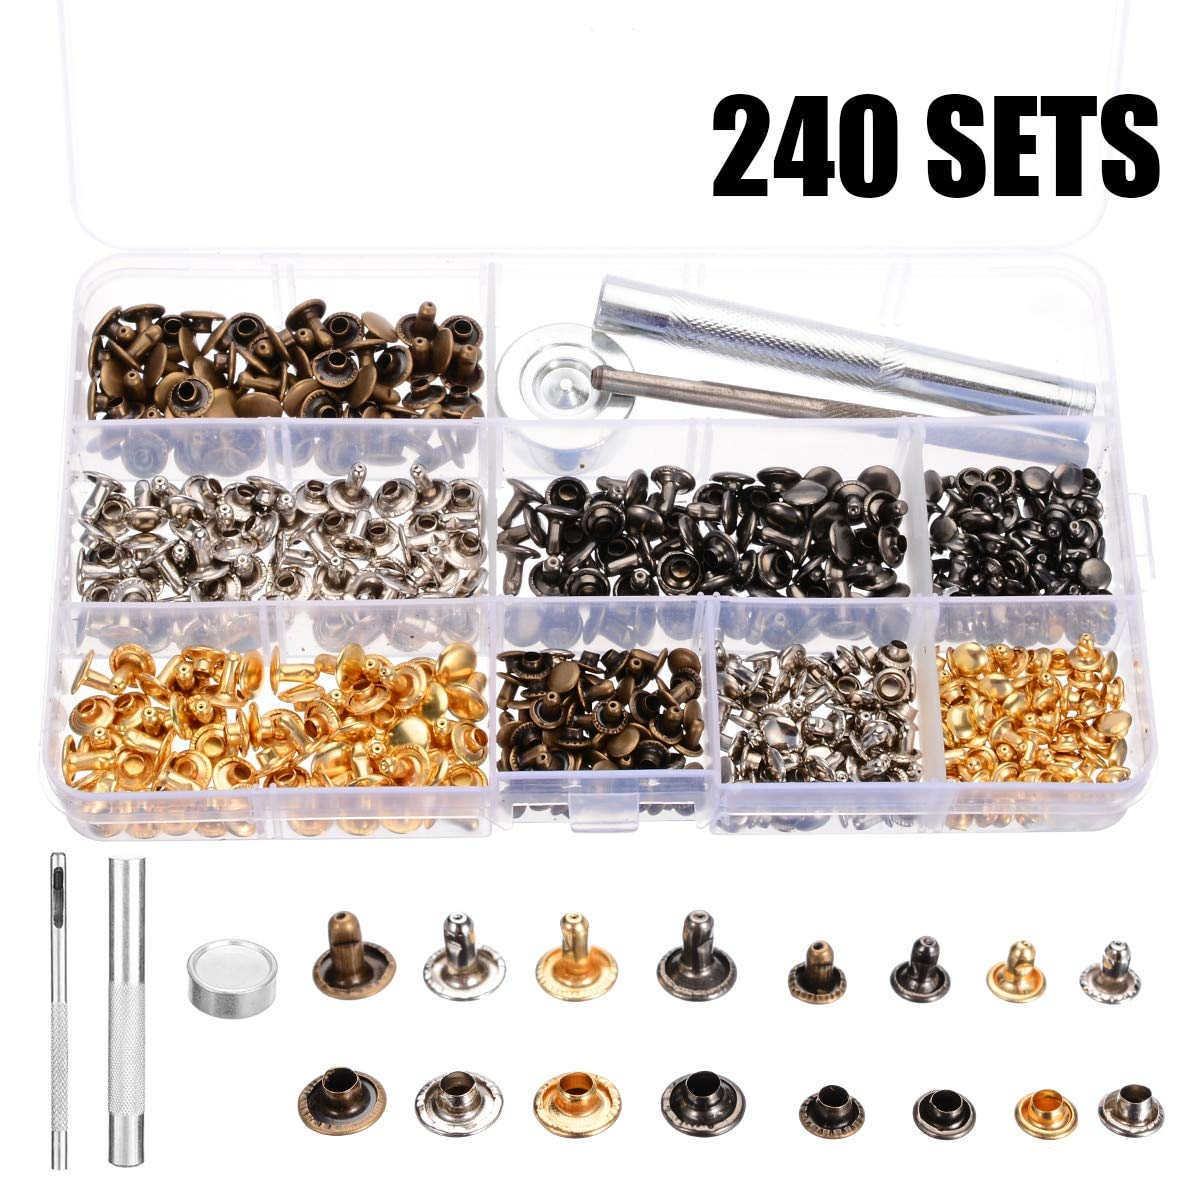 Ants-Store - 240 Sets Leather Craft Double Cap Repairing Rivets Tubular Snaps Fastener Button Press Metal Studs Fixing Tools Kit